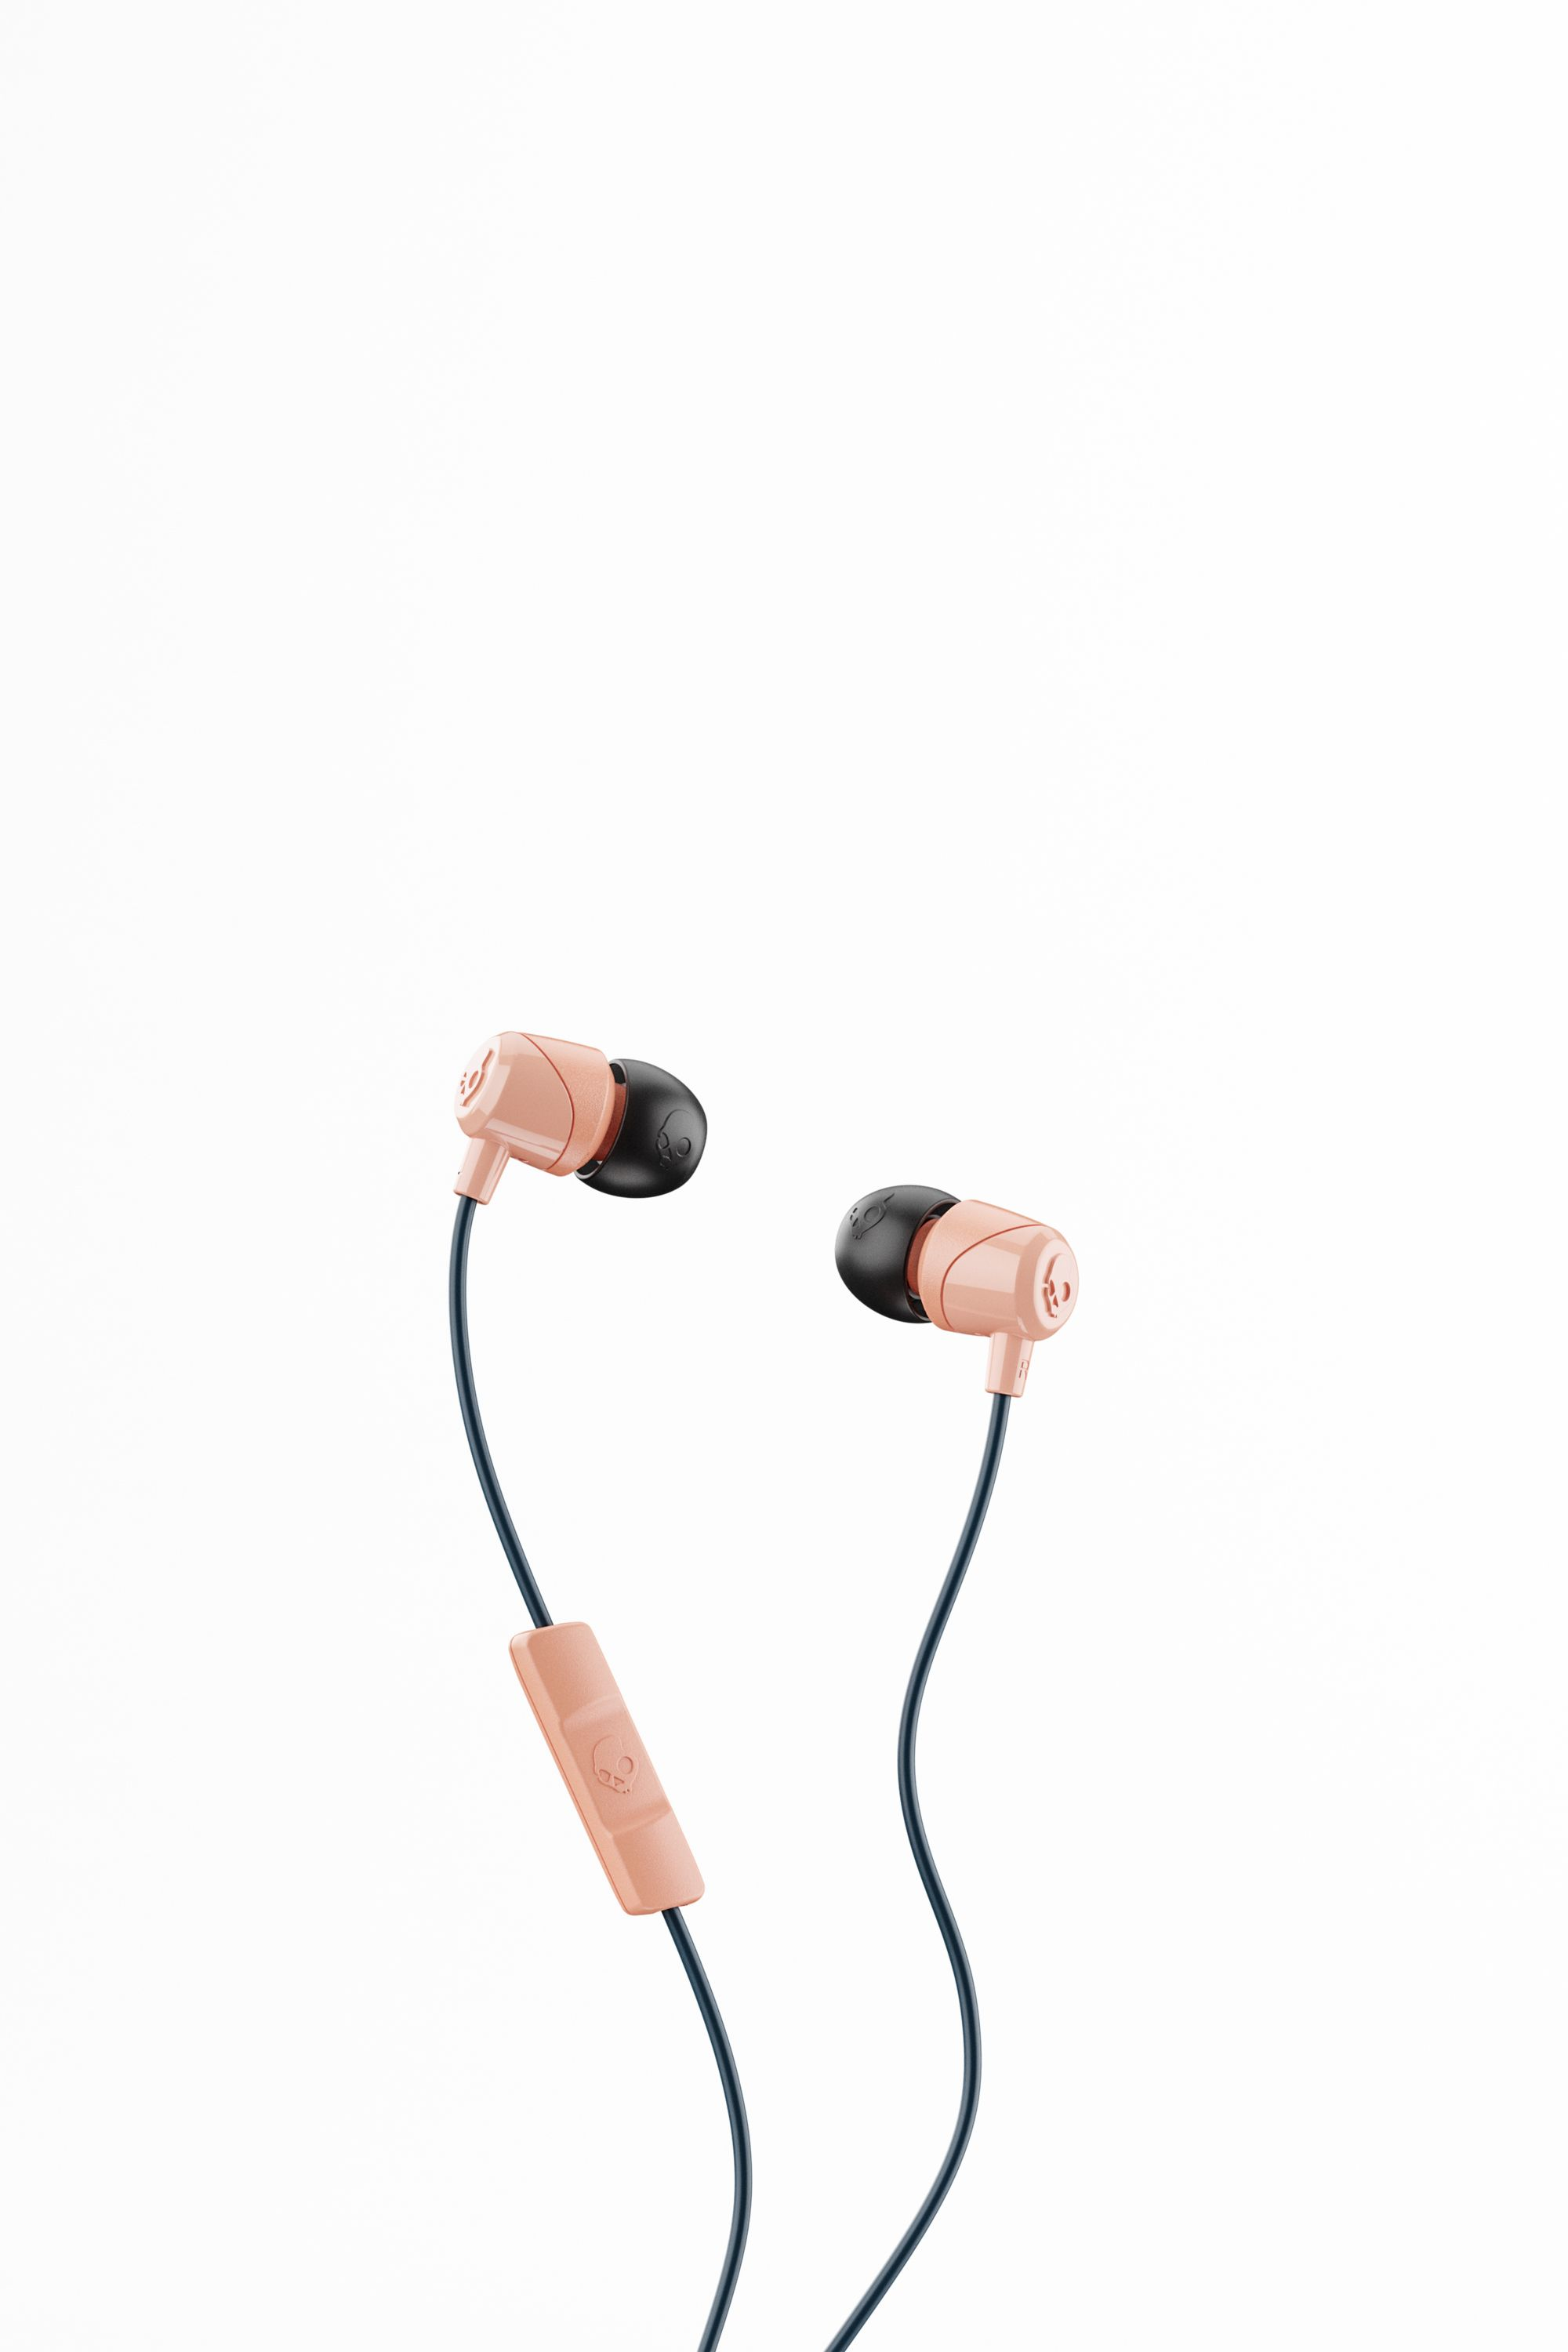 The Jib W Mic Earbuds From Skullcandy Is An Unrivaled Accessory These Quality Earbuds Are Sculpted With Nois Earbuds Skullcandy Headphones Skullcandy Earbuds